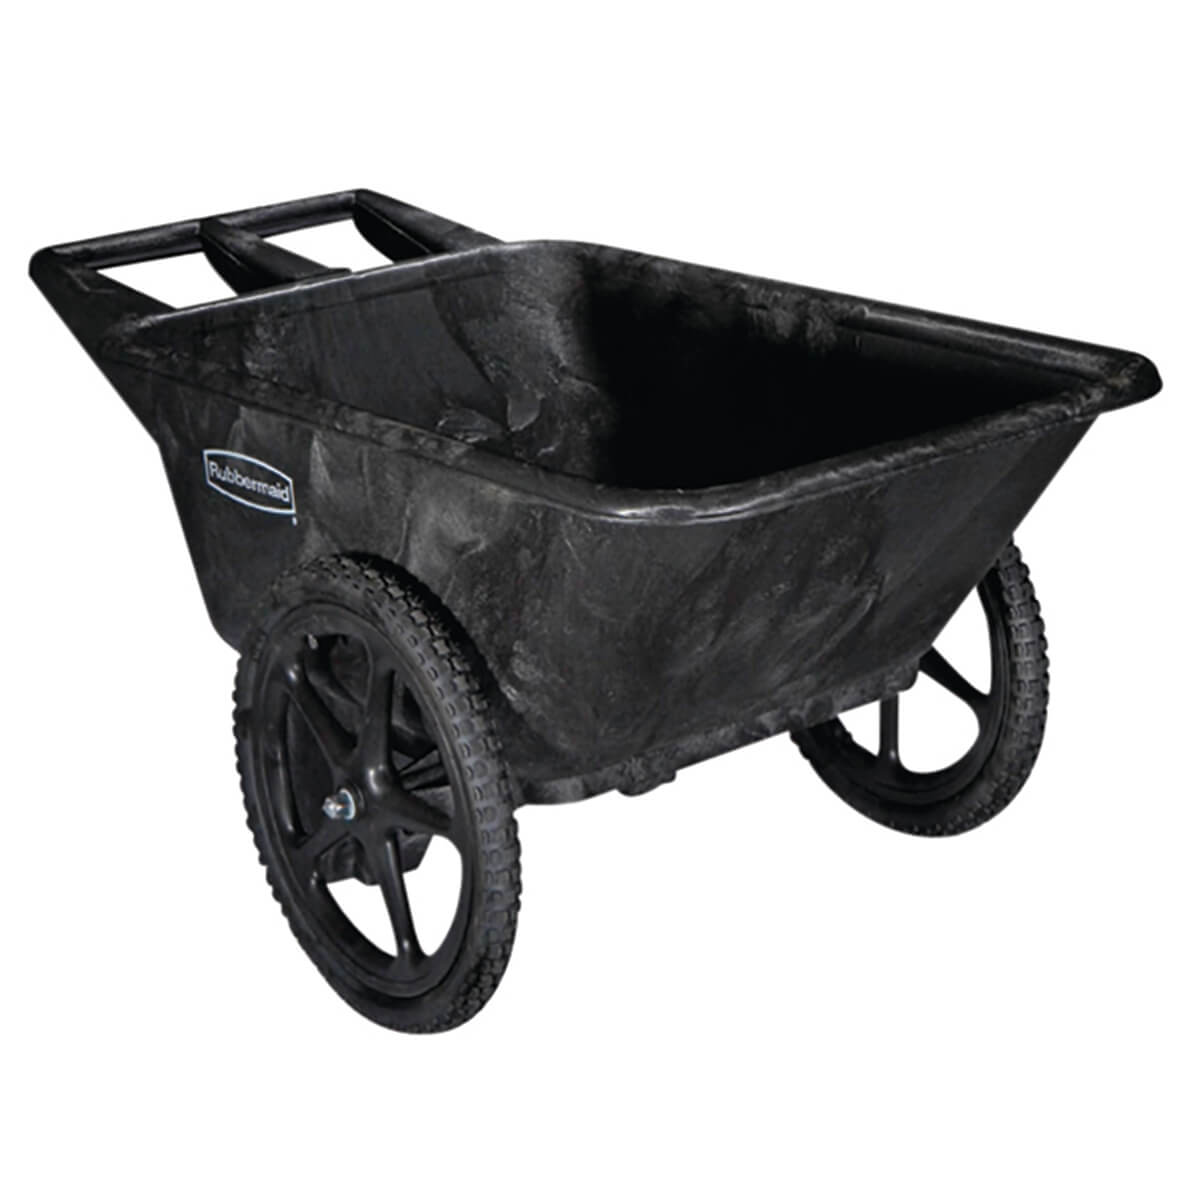 7.5 Cu.Ft. Rubbermaid Farm Tough Cart